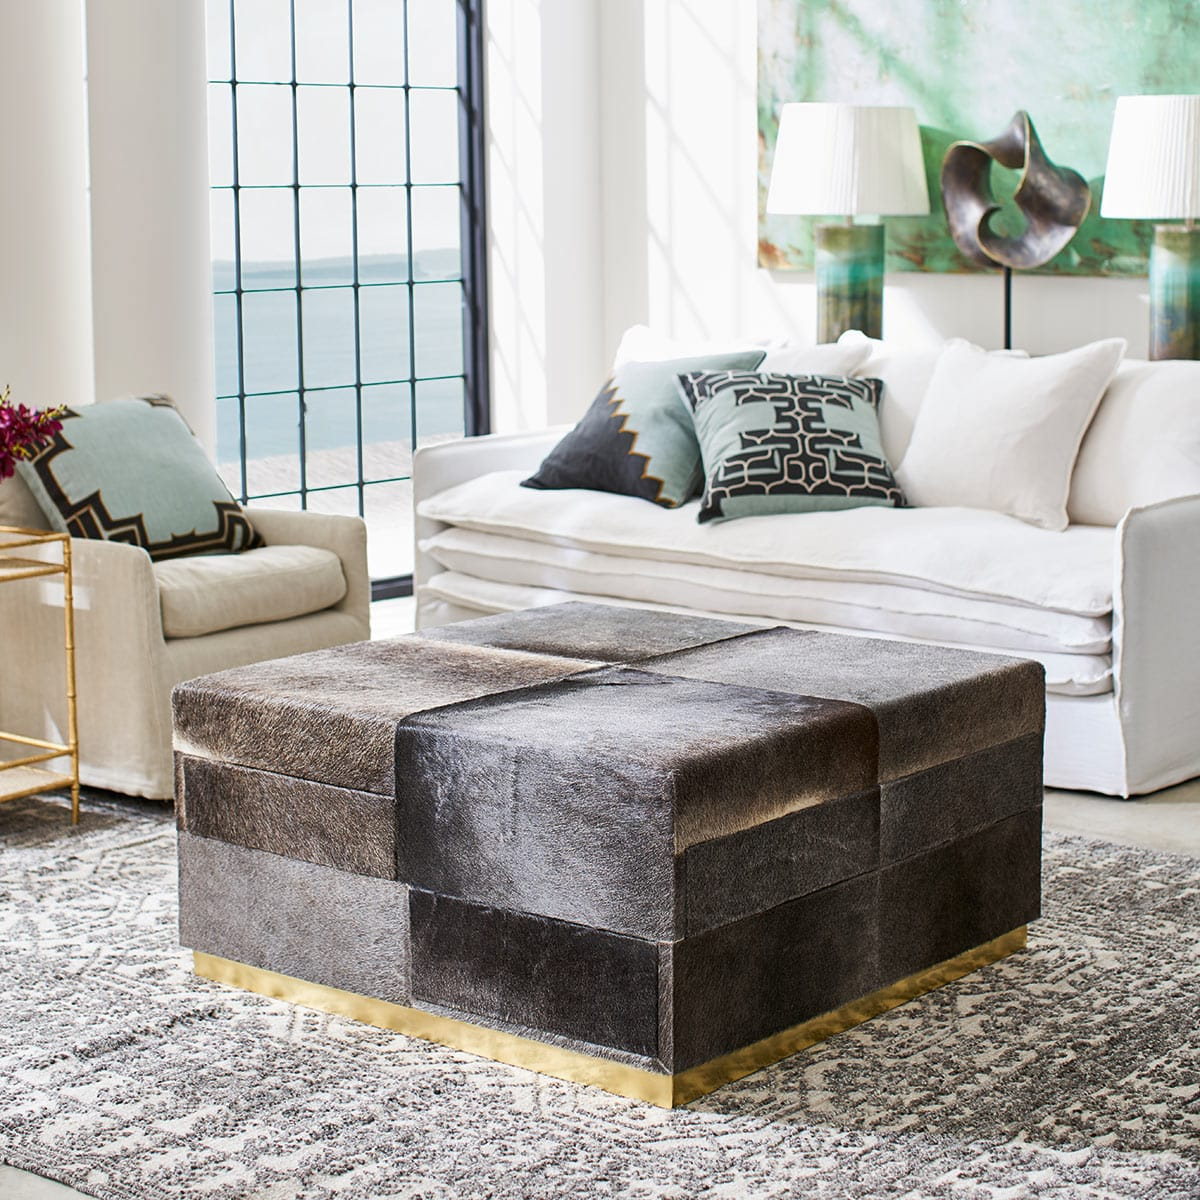 Cow Hide Ottoman With Storage Drawers Grey